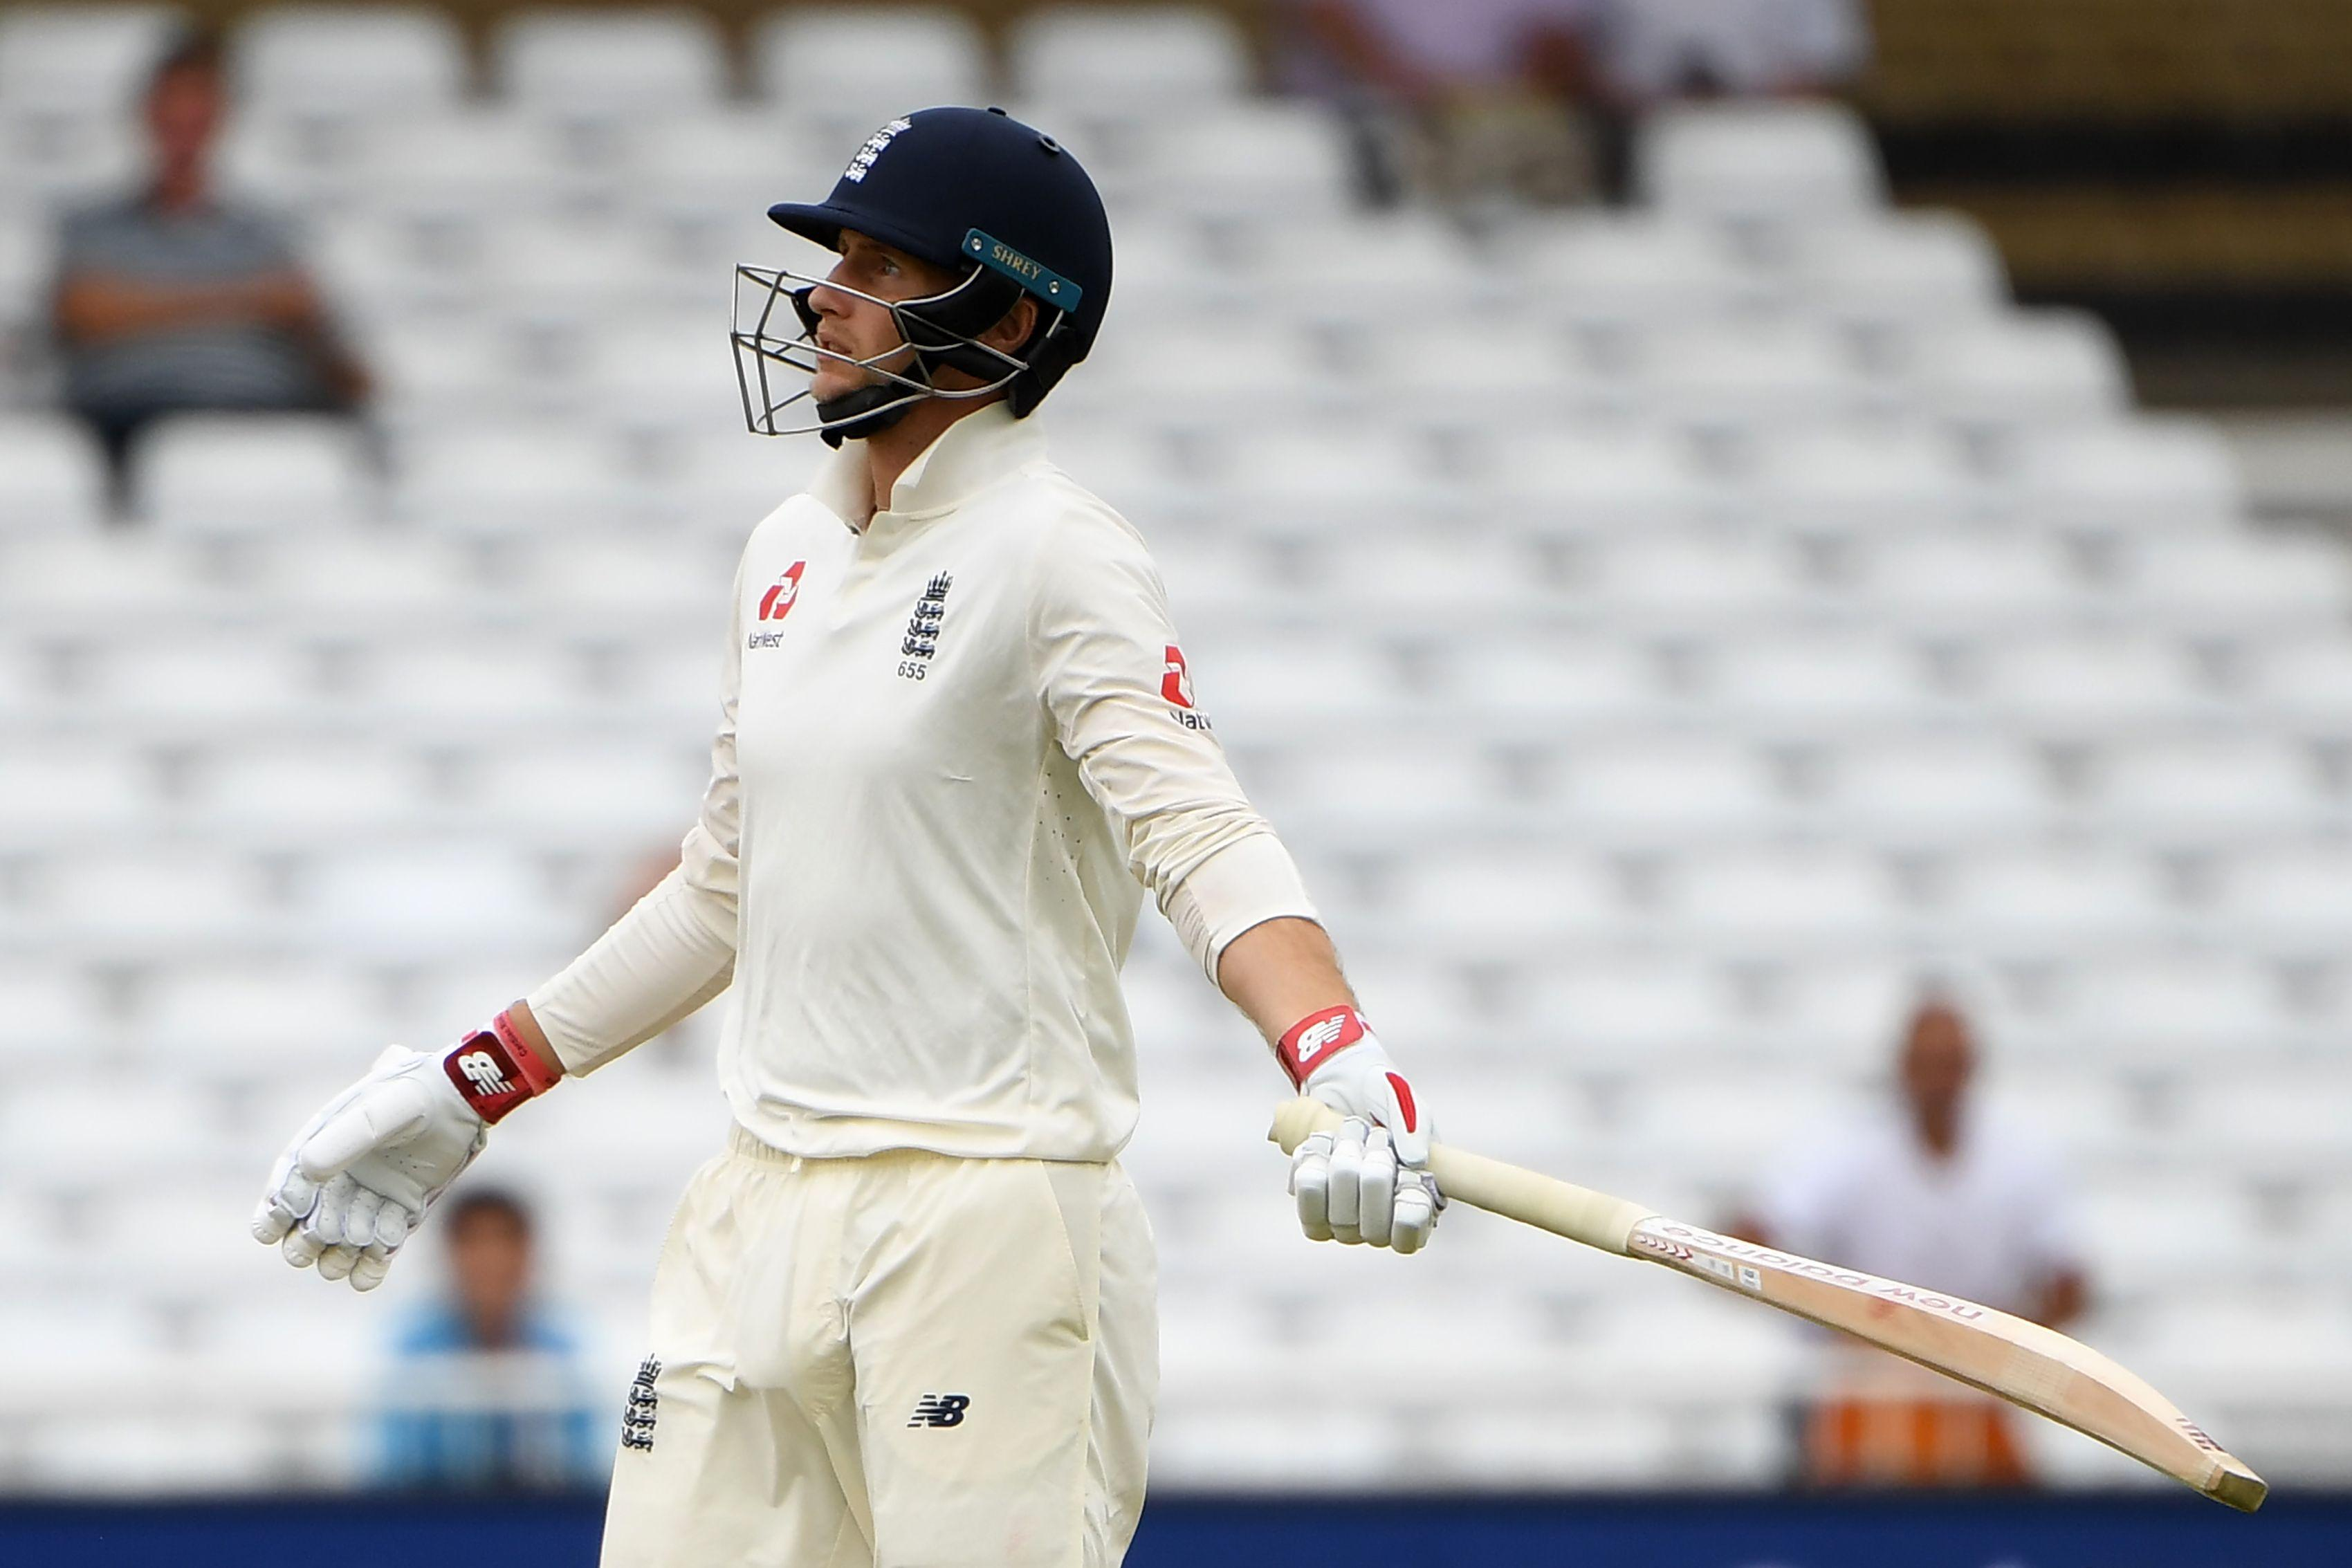 Joe Root scored just 29 across the two innings at Trent Bridge and saw his ranking fall to fifth as a result